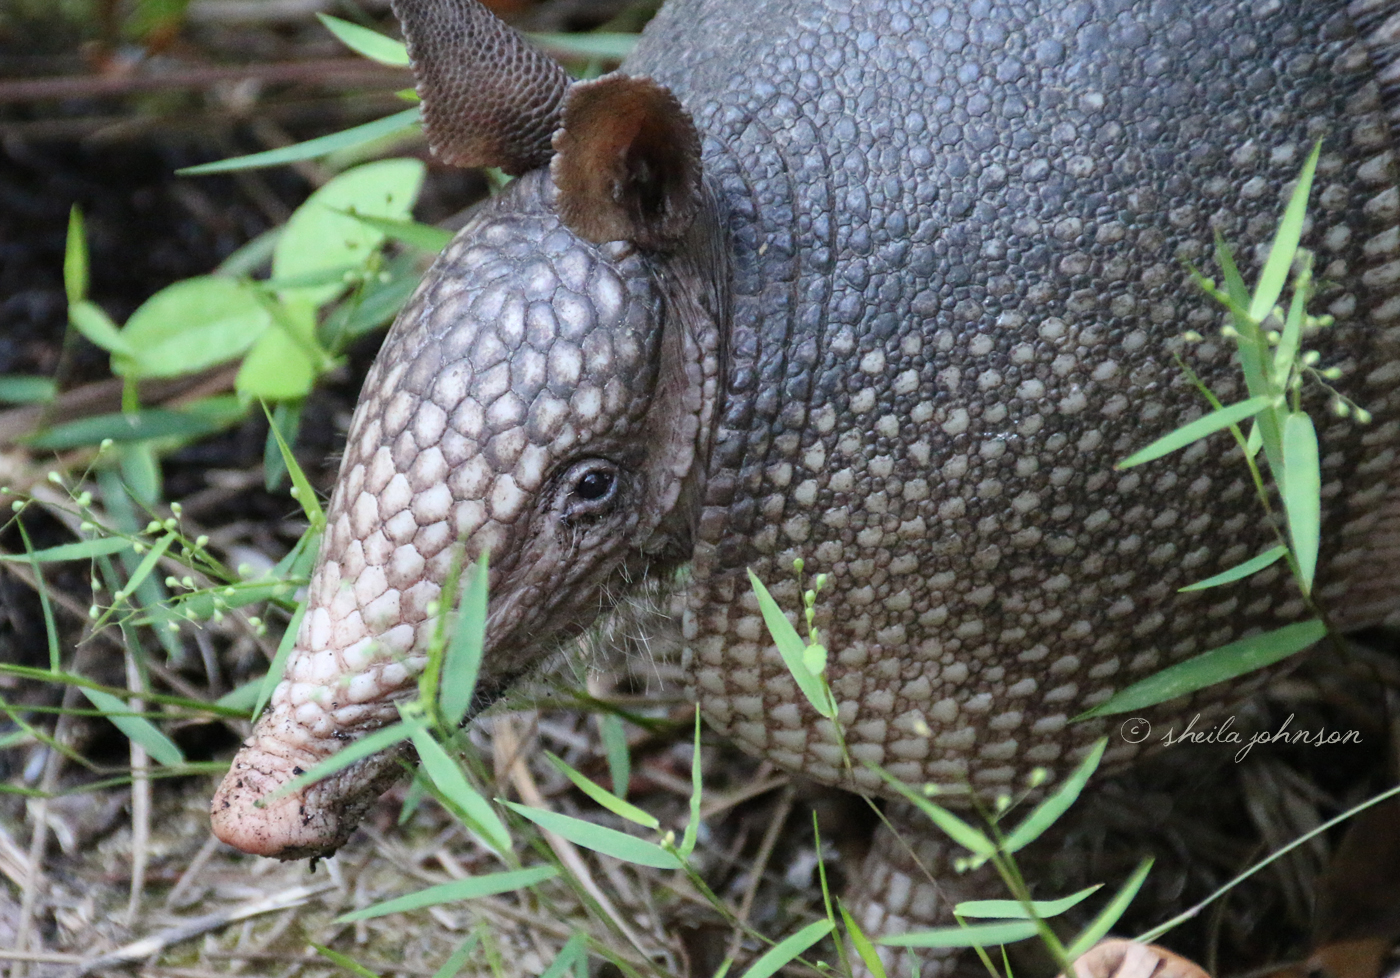 With horrible eyesight, Armadillos must always wonder, 'Is anybody there?' This one sniffed the air several times before deciding I was foe and not friend.